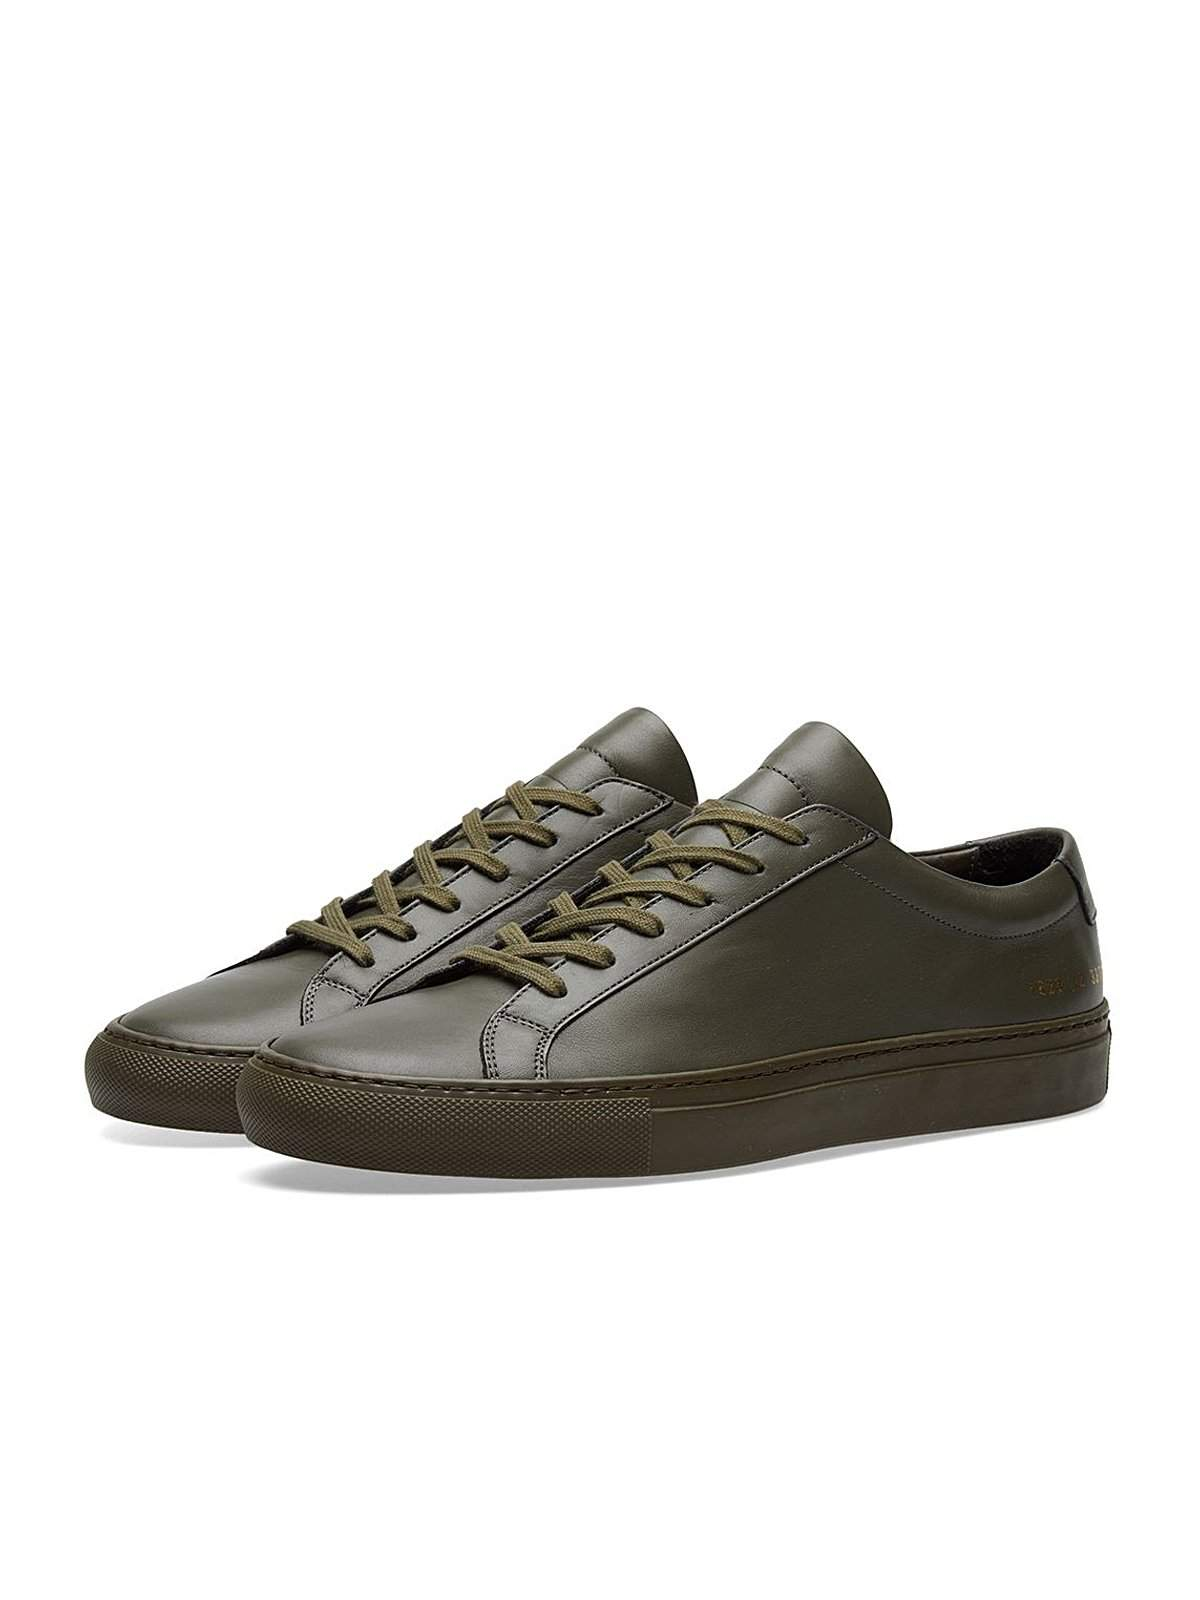 Common Projects Original Achilles Low Army Green - MORE by Morello Indonesia